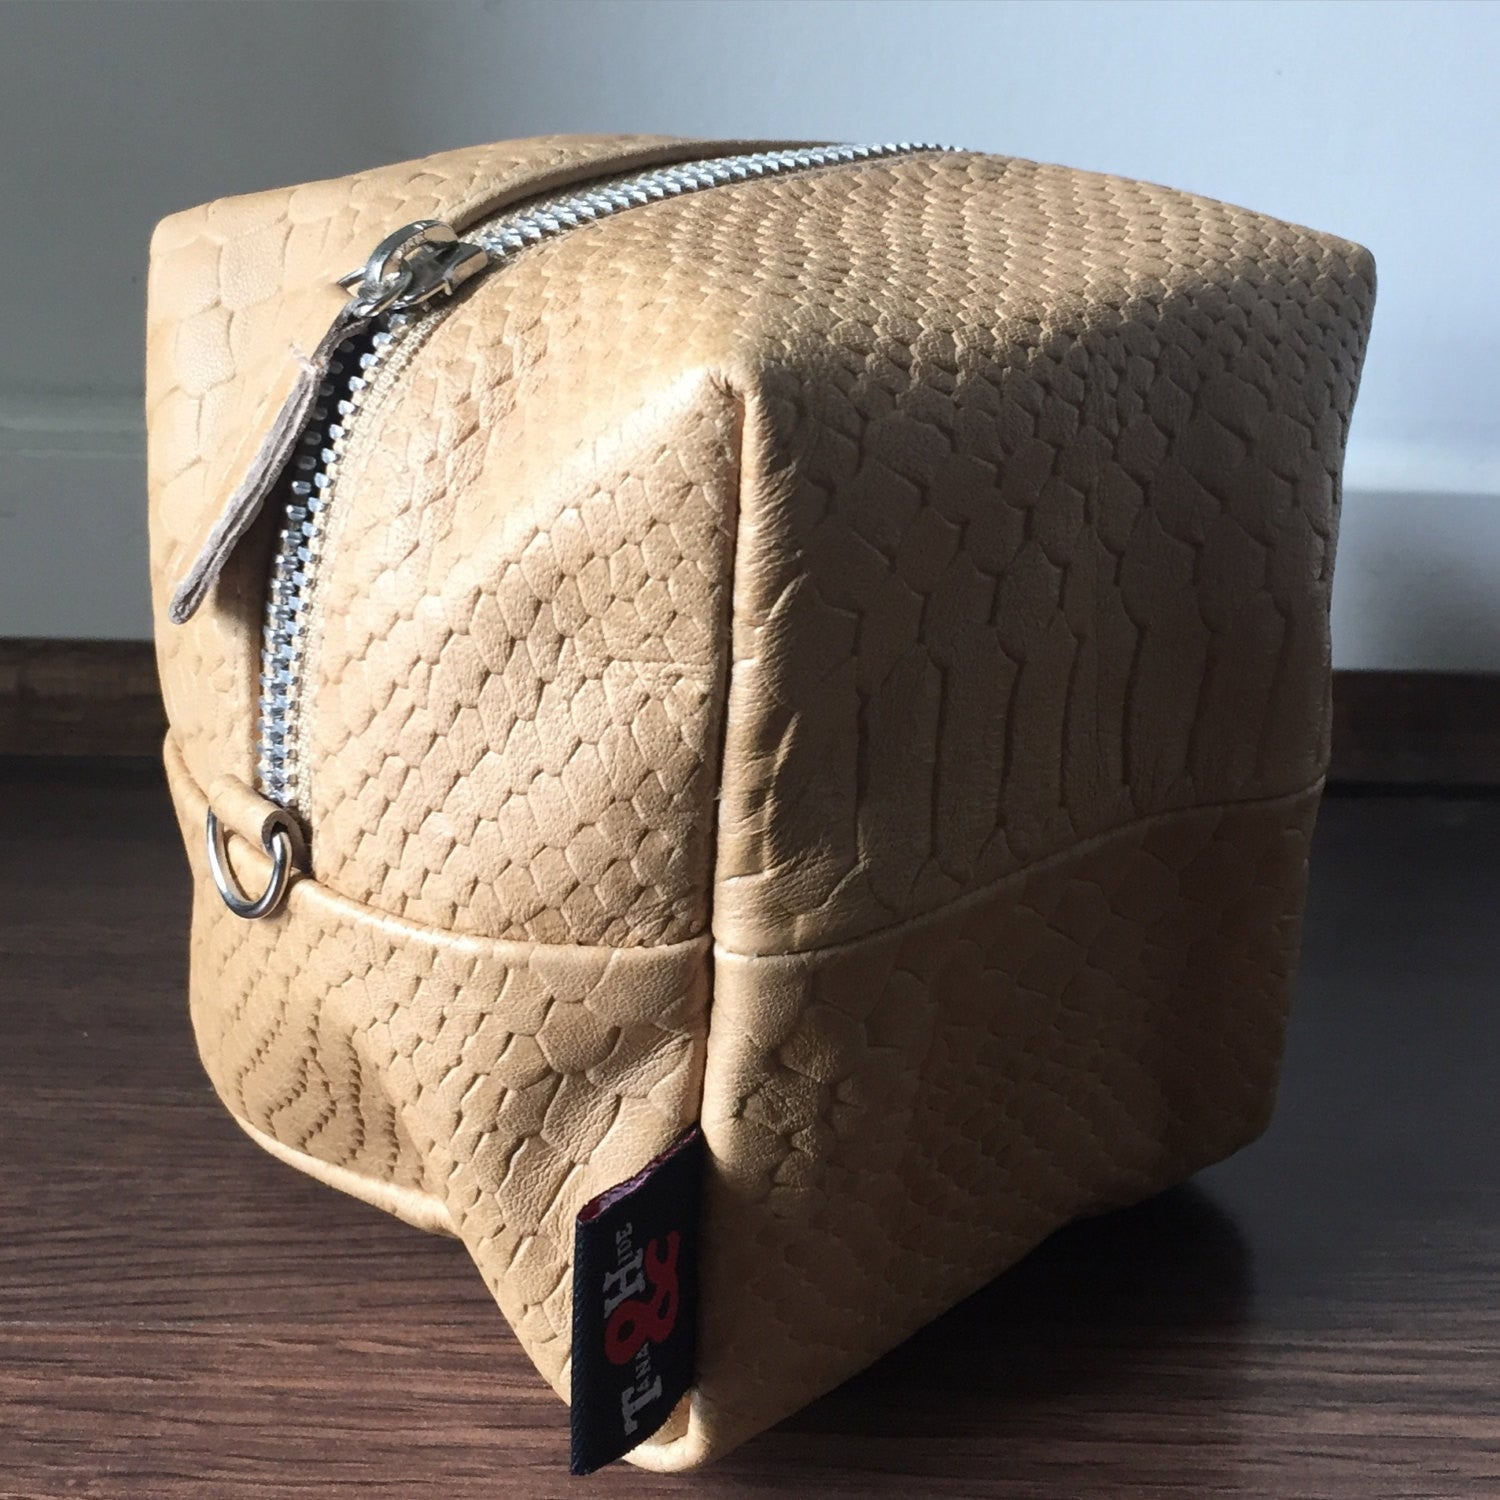 The Cubist - Lambskin leather cube pouch or purse. Make up bag or mini bag